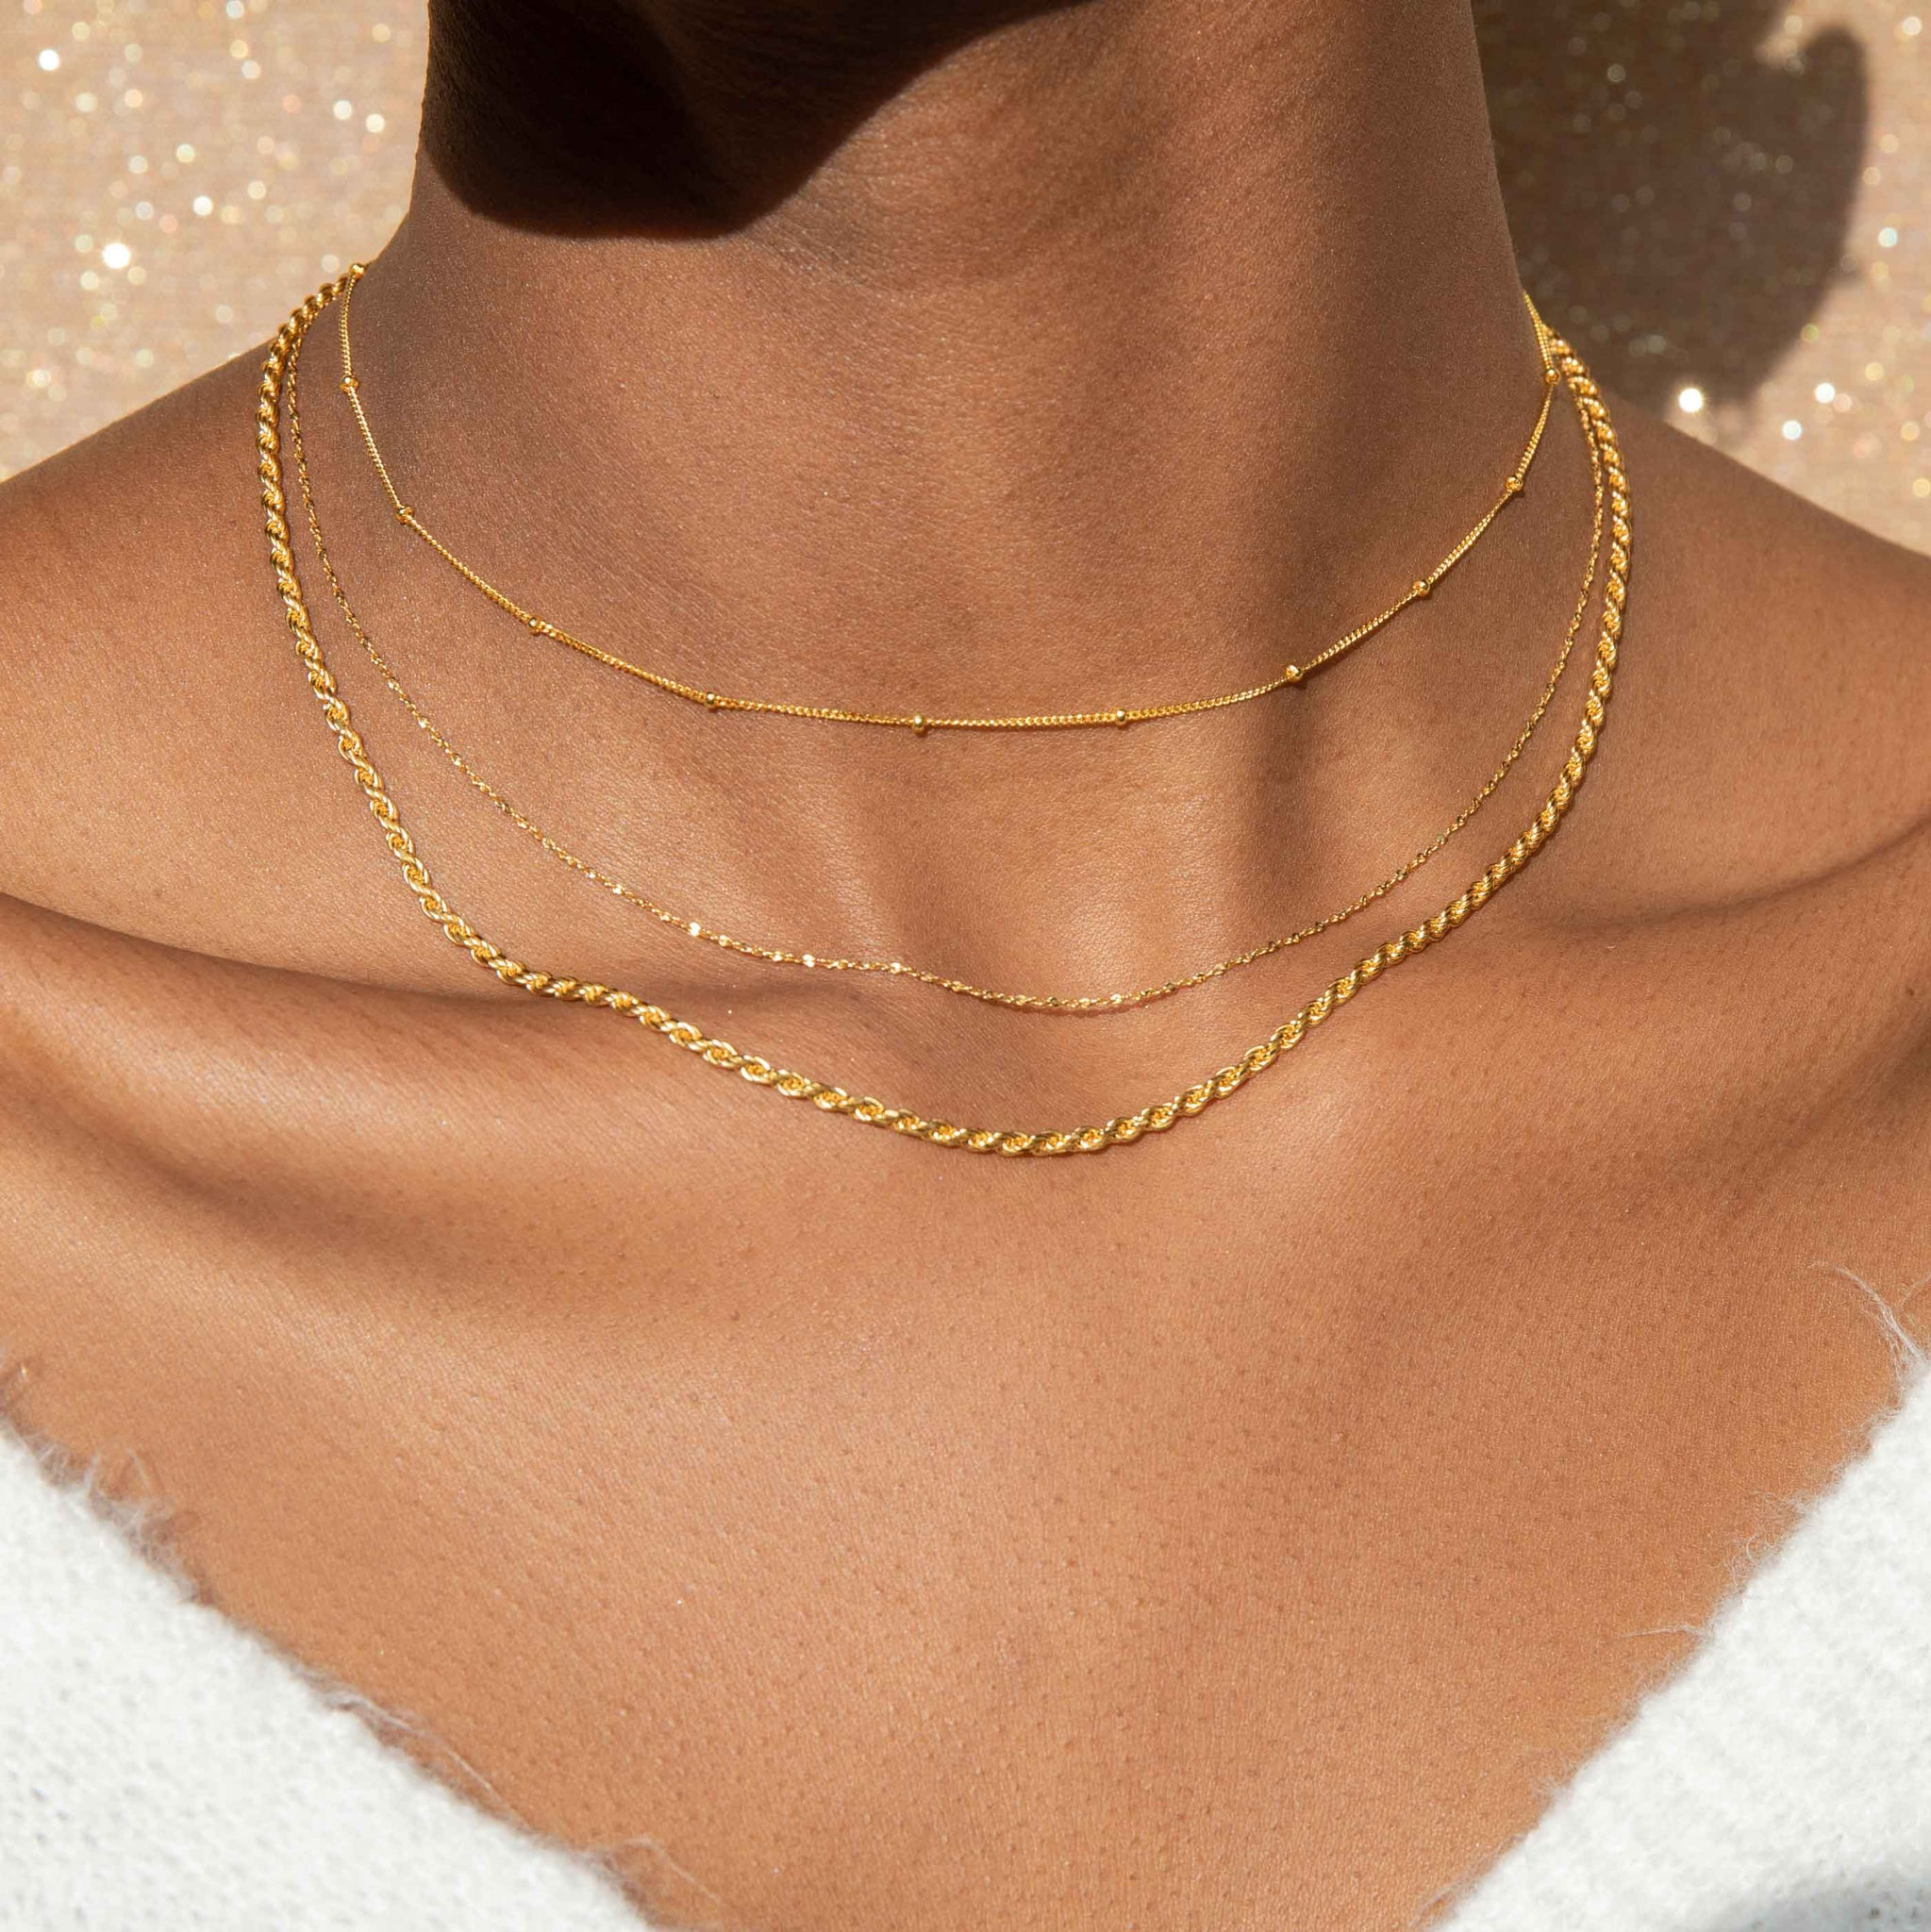 Basic Small Beaded Choker in Gold worn with chain necklaces